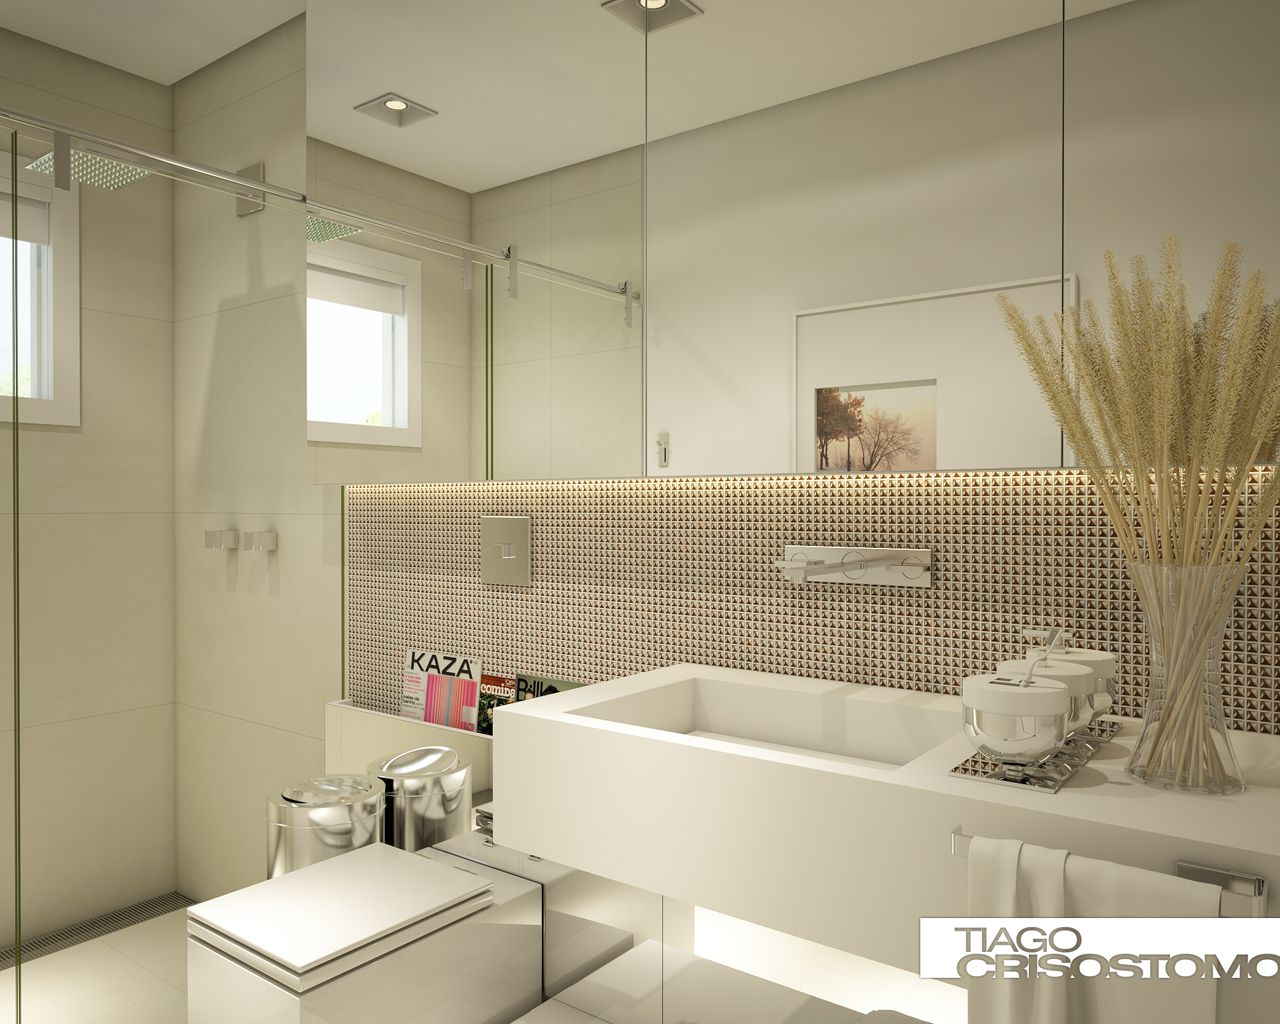 apartamentobanheiros on Pinterest  Shower Niche, Modern Bathrooms and Bathroom -> Pia Banheiro Sketchup